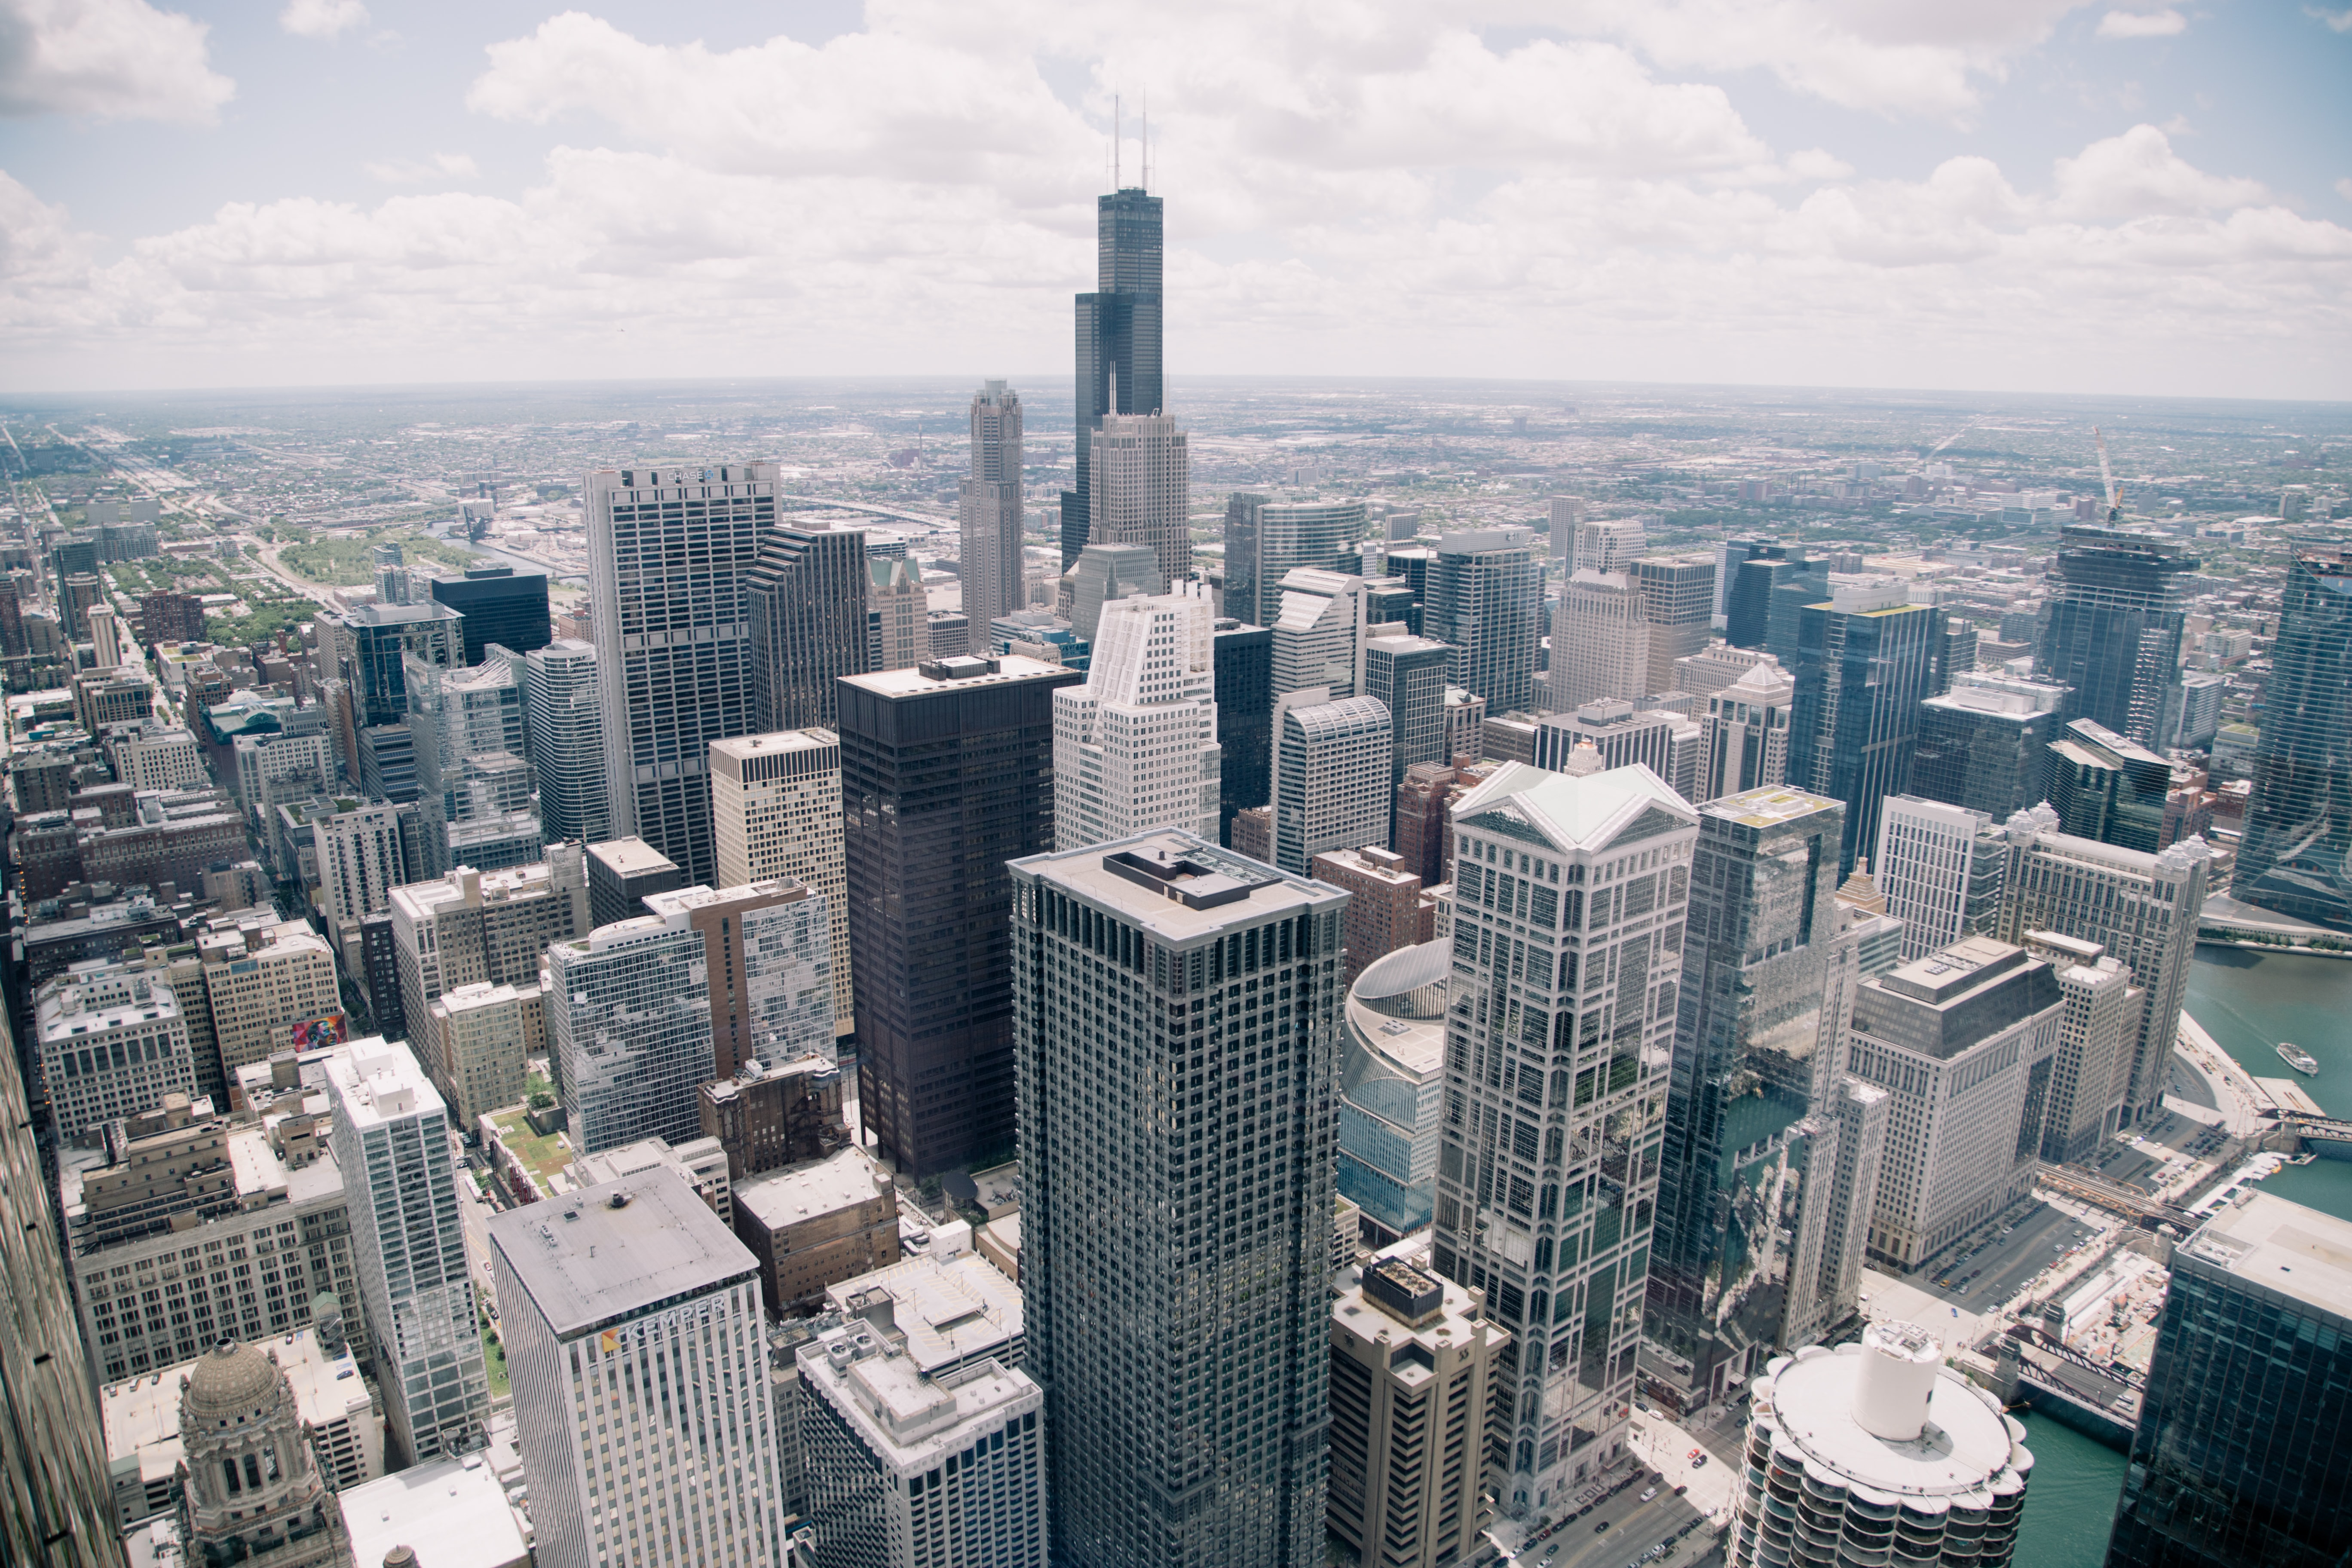 Sears Tower, USA under white clouds at daytime